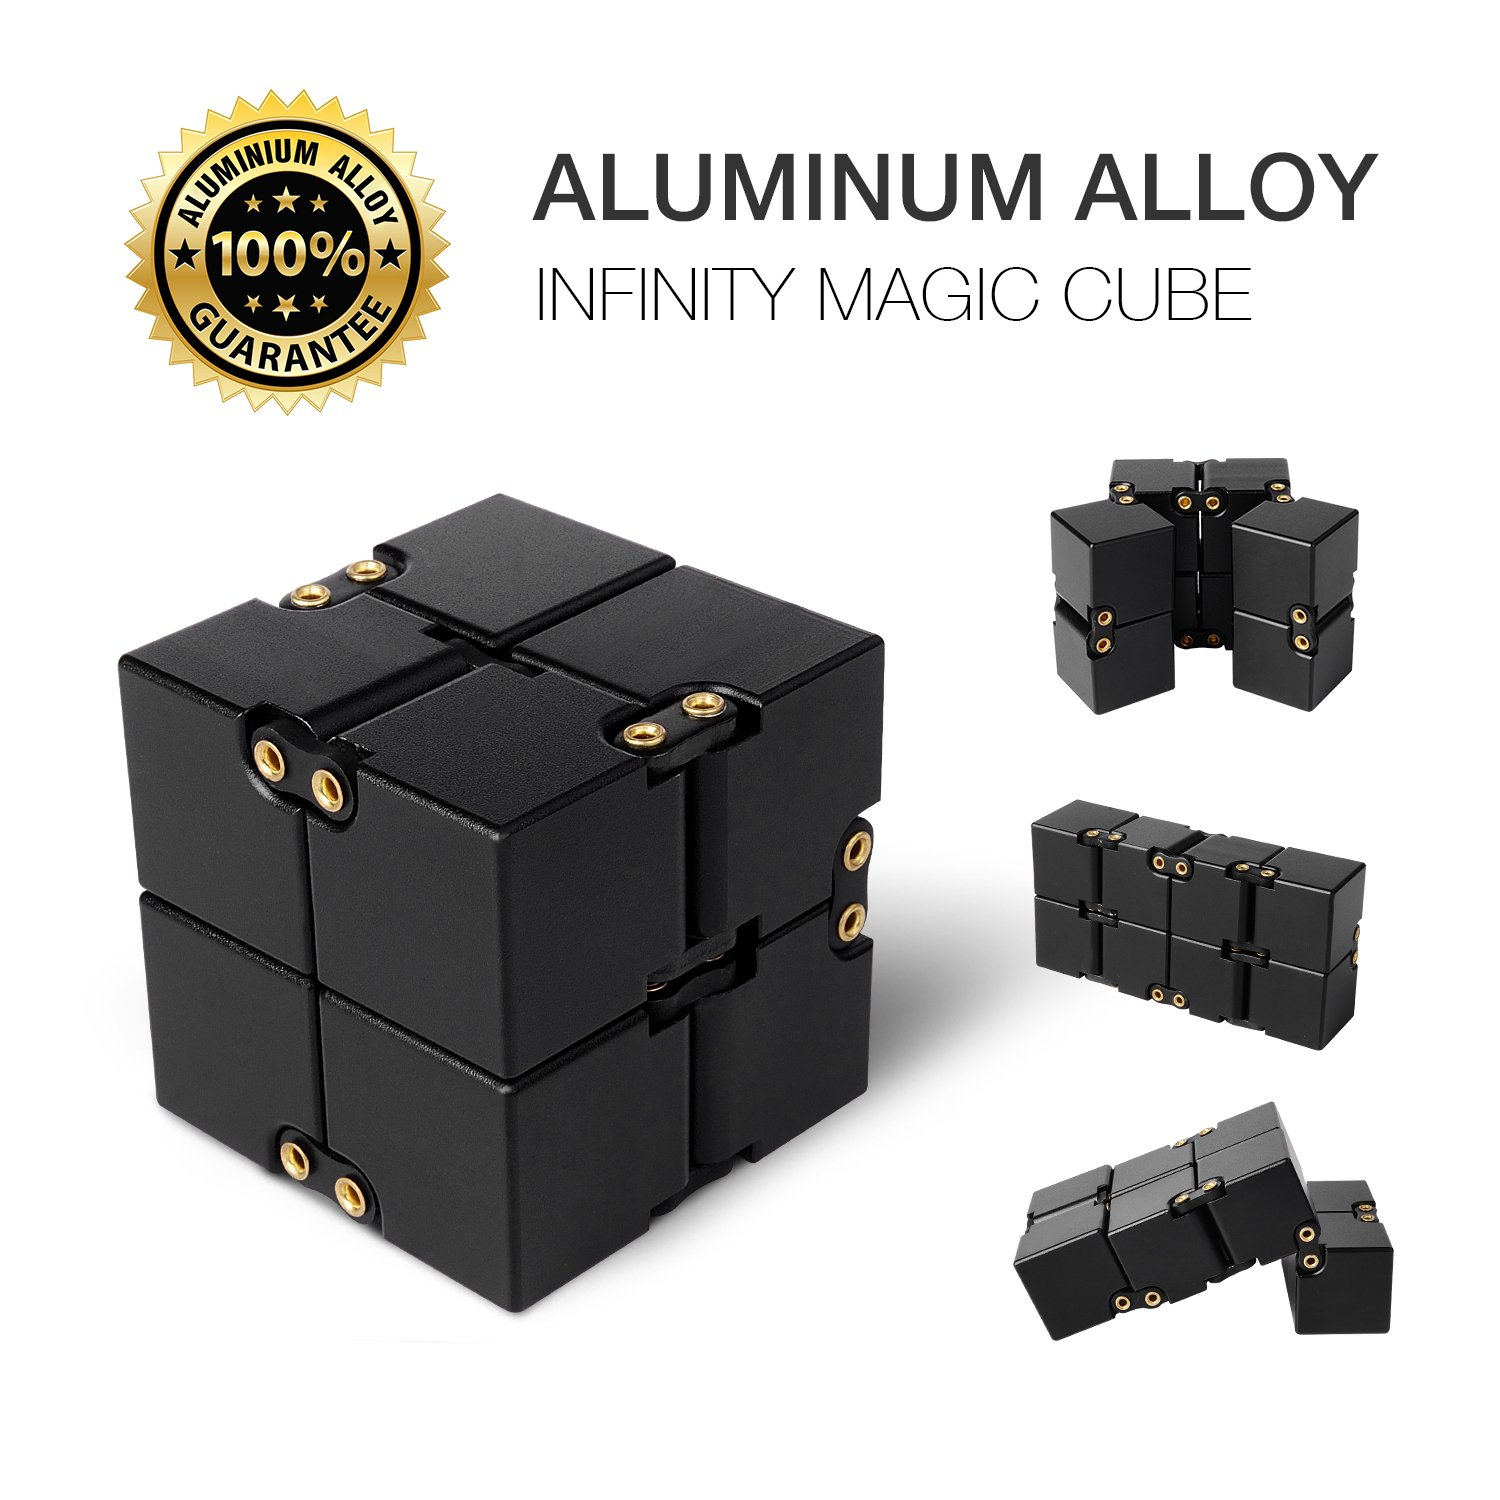 JoyNote Aluminium Alloy Infinity Pocket Size Cube Toys Relaxation Office Stress Reducers for ADD, ADHD, Anxiety, Autism Adult & Kids (Black)